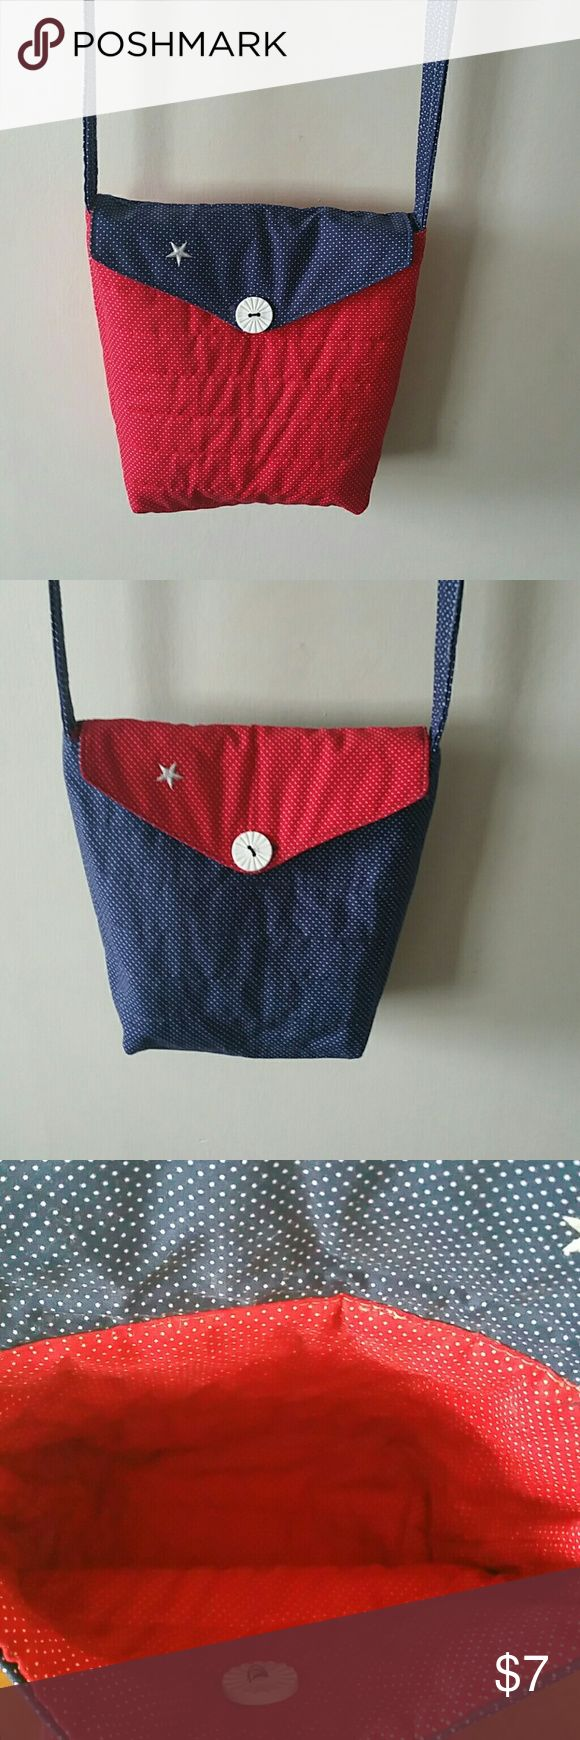 HANDMADE QUILTED REVERSIBLE BAG HANDMADE QUILTED  REVERSIBLE BAG,  SHOULDER  HANDLE  19IN CHINA DROP, 10 INCHES WIDE, 91/2 INCHES DEEP, RED & BLUE WITH WHITE BUTTON,  STAR IS ONLY GLUED ON MAY COME OFF IF WASHED  BUTTON  CLOSURE. HANDMADE QUILTED  Bags Shoulder Bags